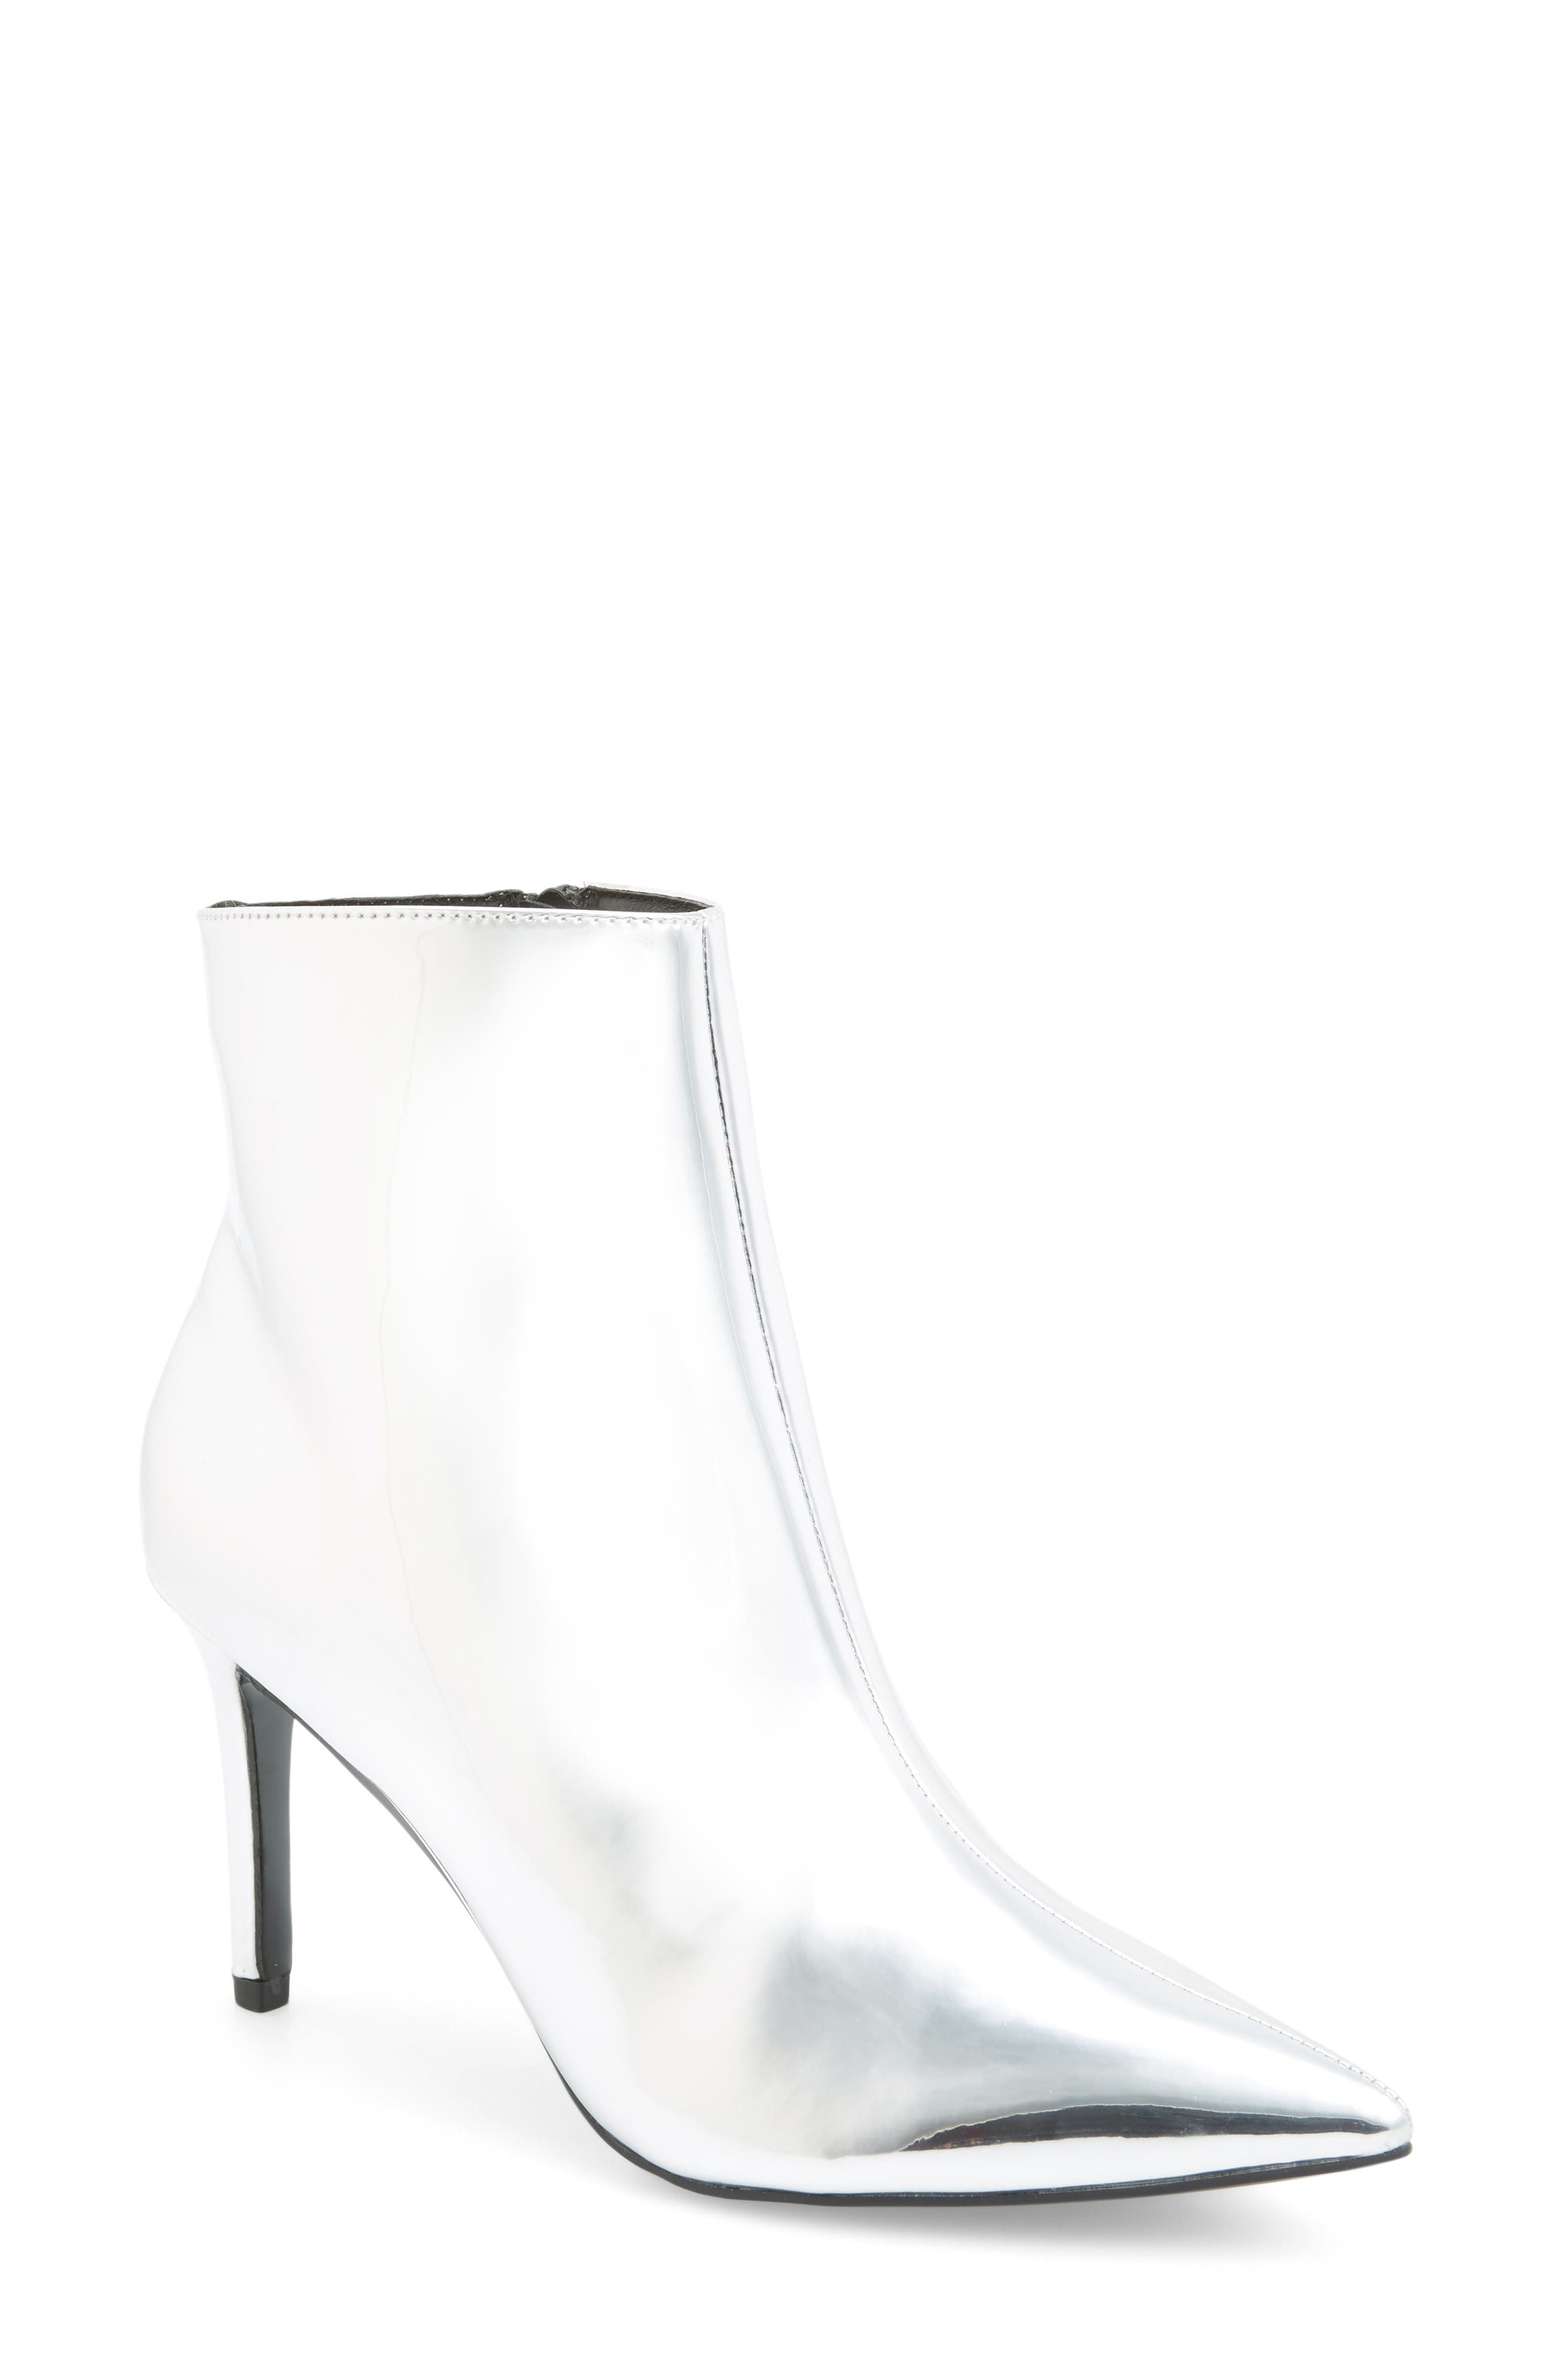 Alternate Image 1 Selected - Topshop Mimosa Pointy Toe Bootie (Women)